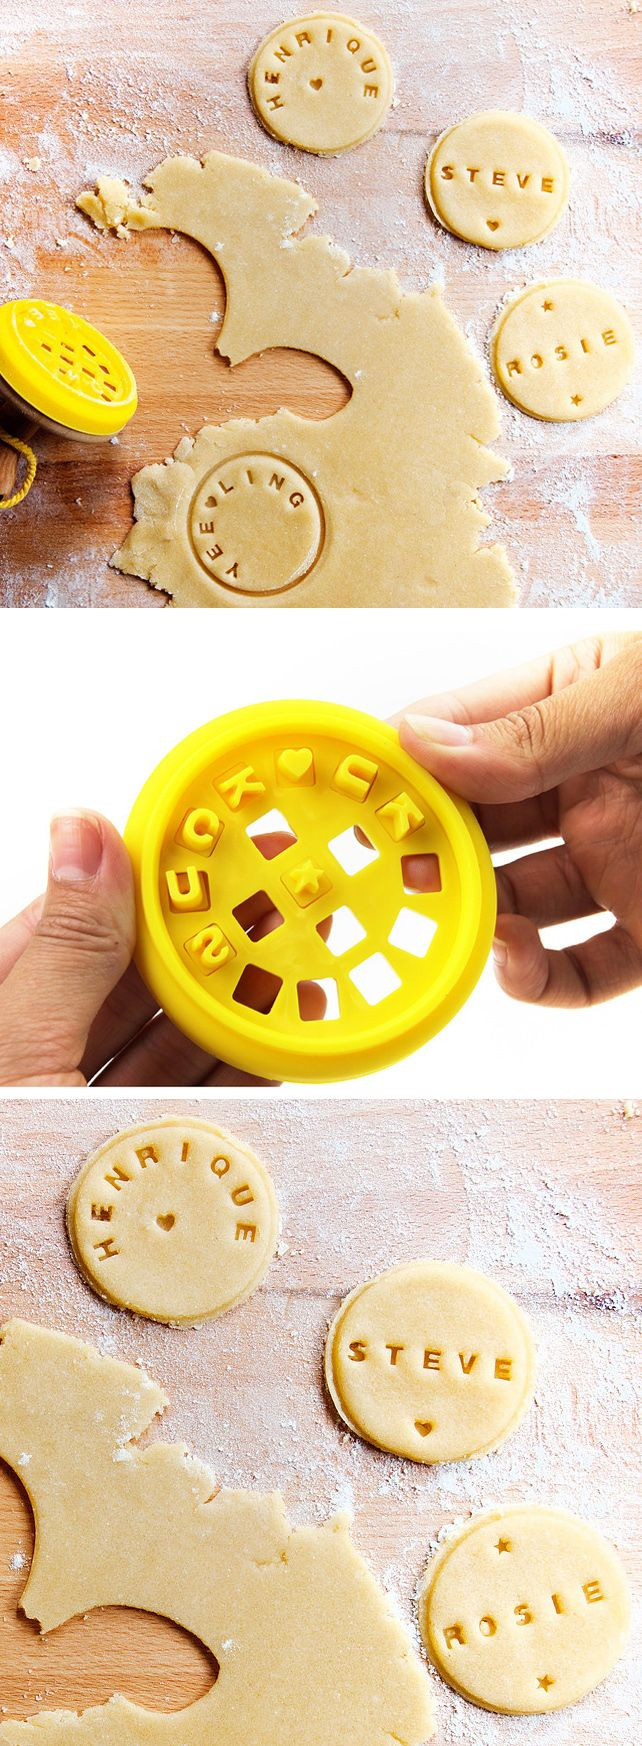 Customizable cookie stamper // perfect stamp for birthday, anniversary or holidays! #product_design #baking